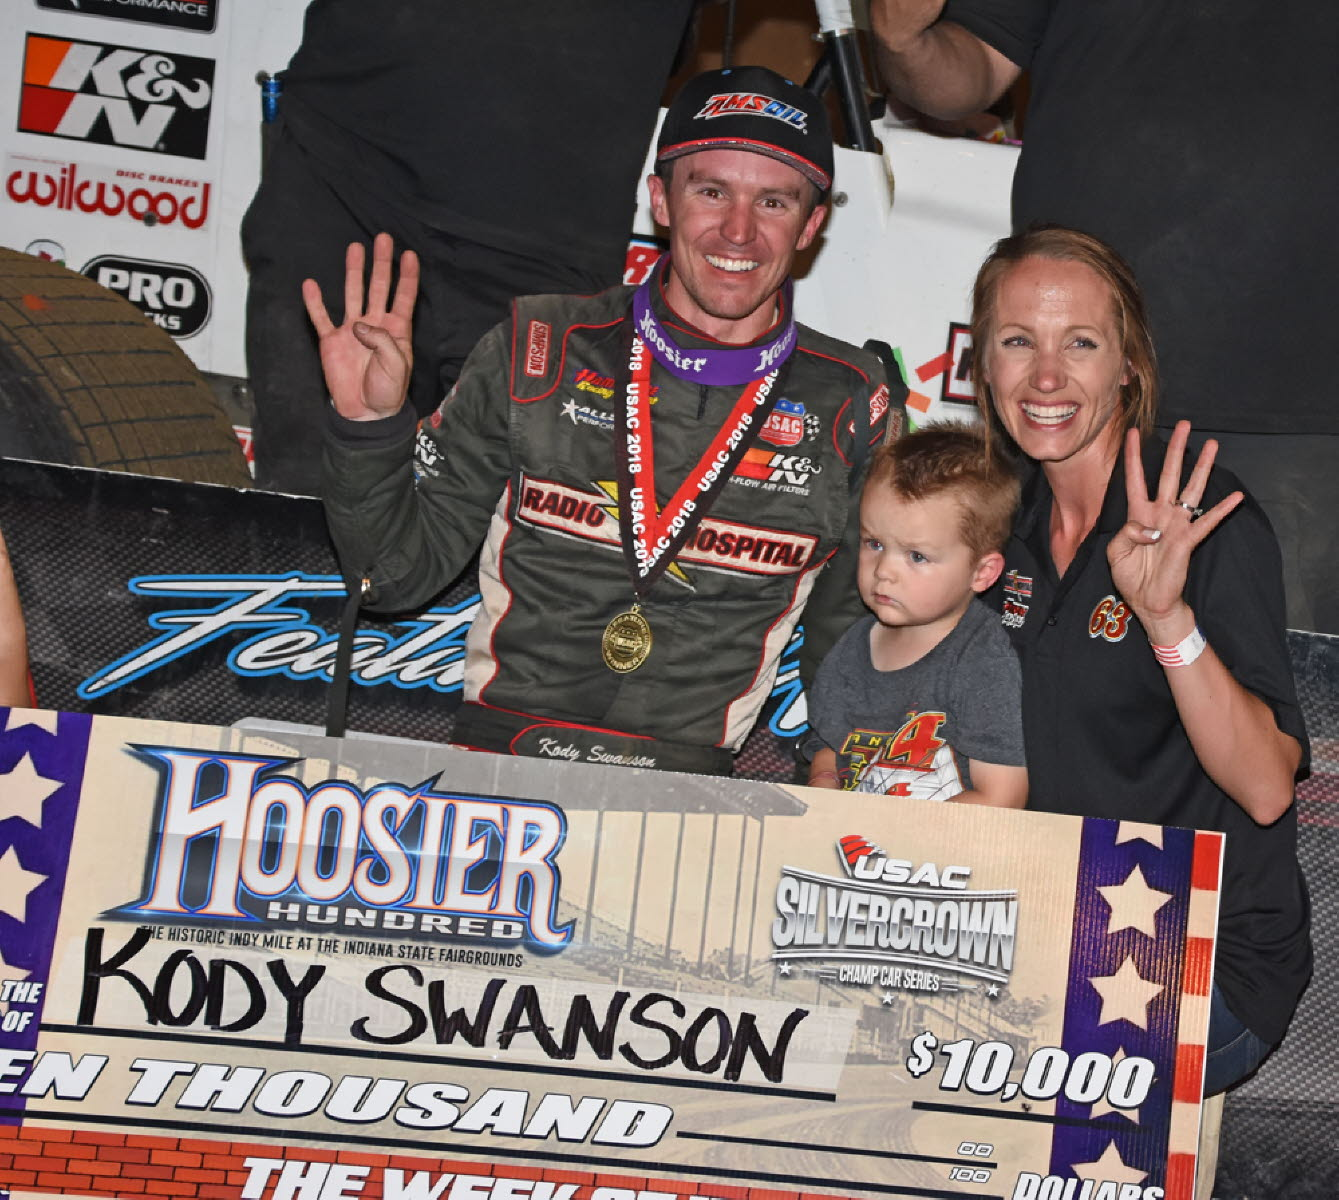 Winner Swanson, wife Jordan and son Trevor hold up four fingers to symbolize his four consecutive victories on the mile dirt track. [Joe Jennings Photo]